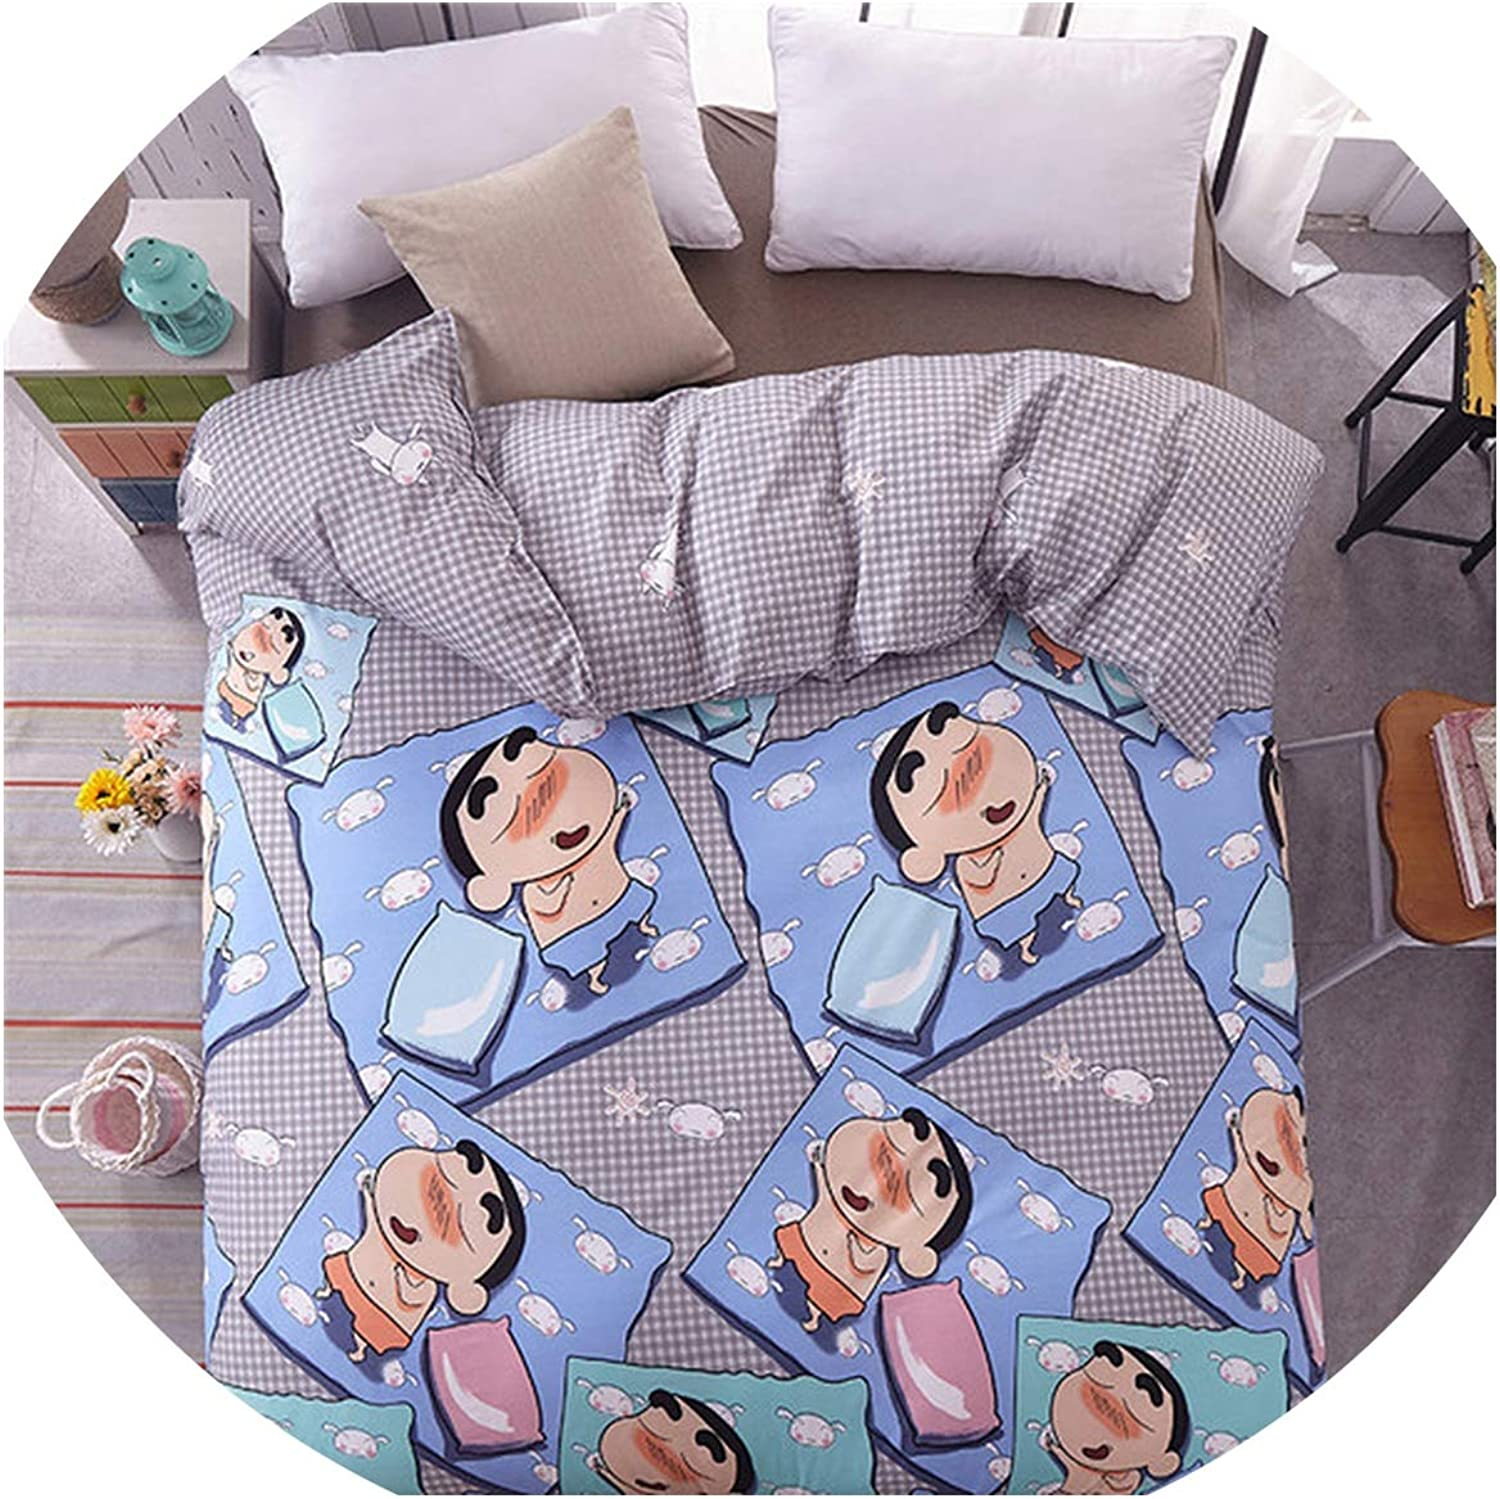 HANBINGPO Rainbow Cartoon Duvet Cover Twin Full Queen King Single Quilt Cover Printing Home Bedding Home Textiles for Kids boy Girl,style19,150x200cm